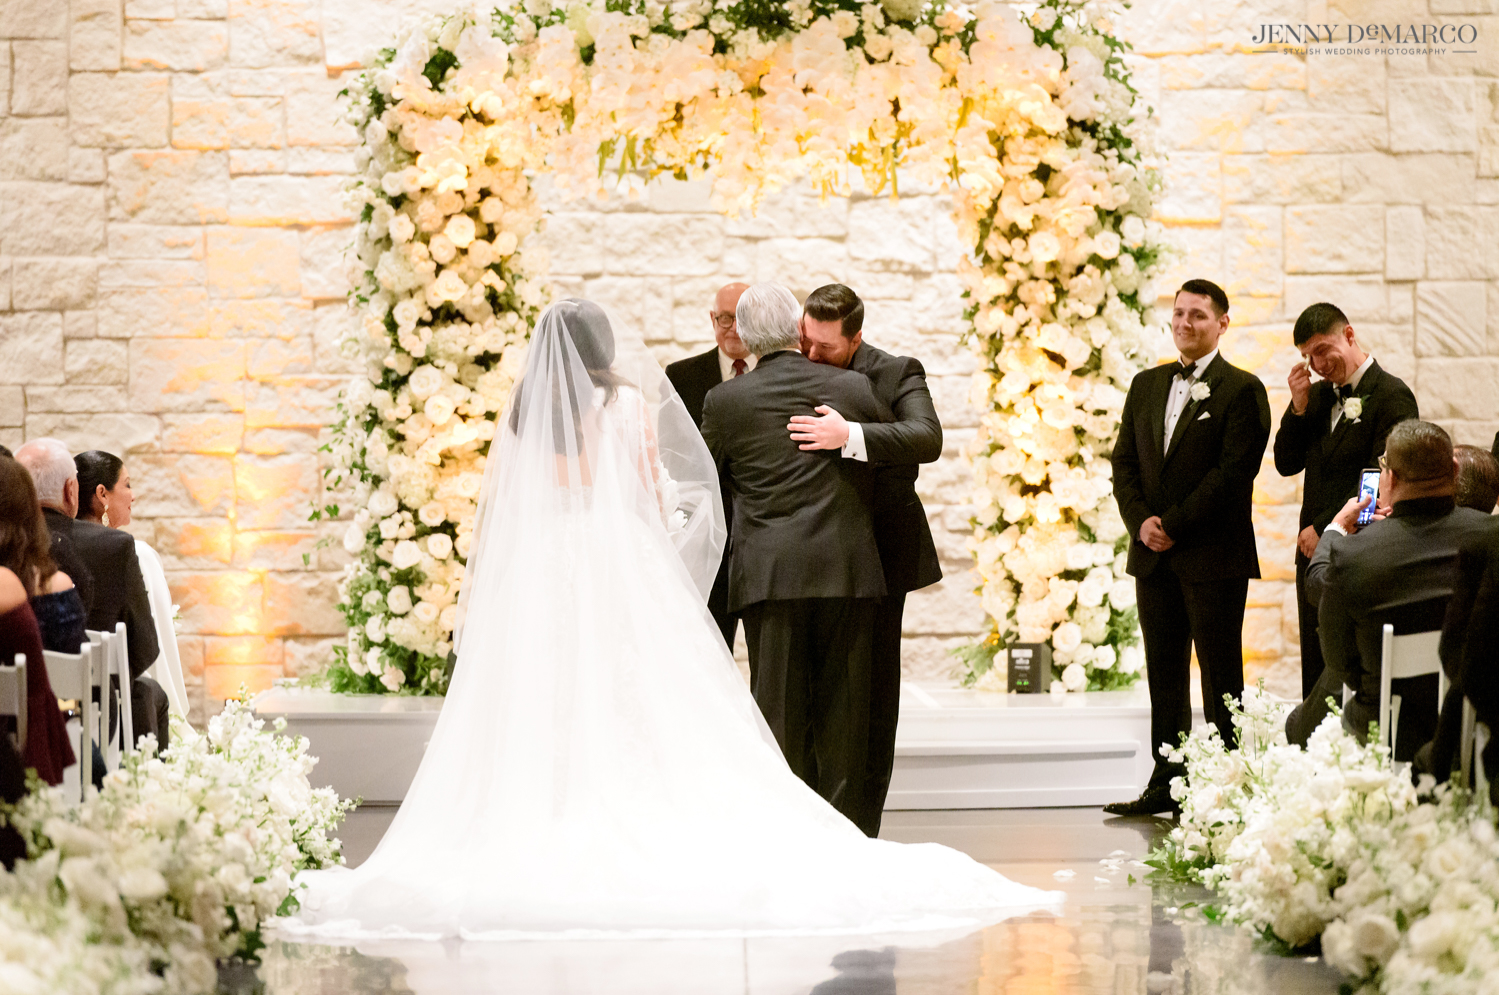 the father of the bride hugging the groom before giving his daughter away